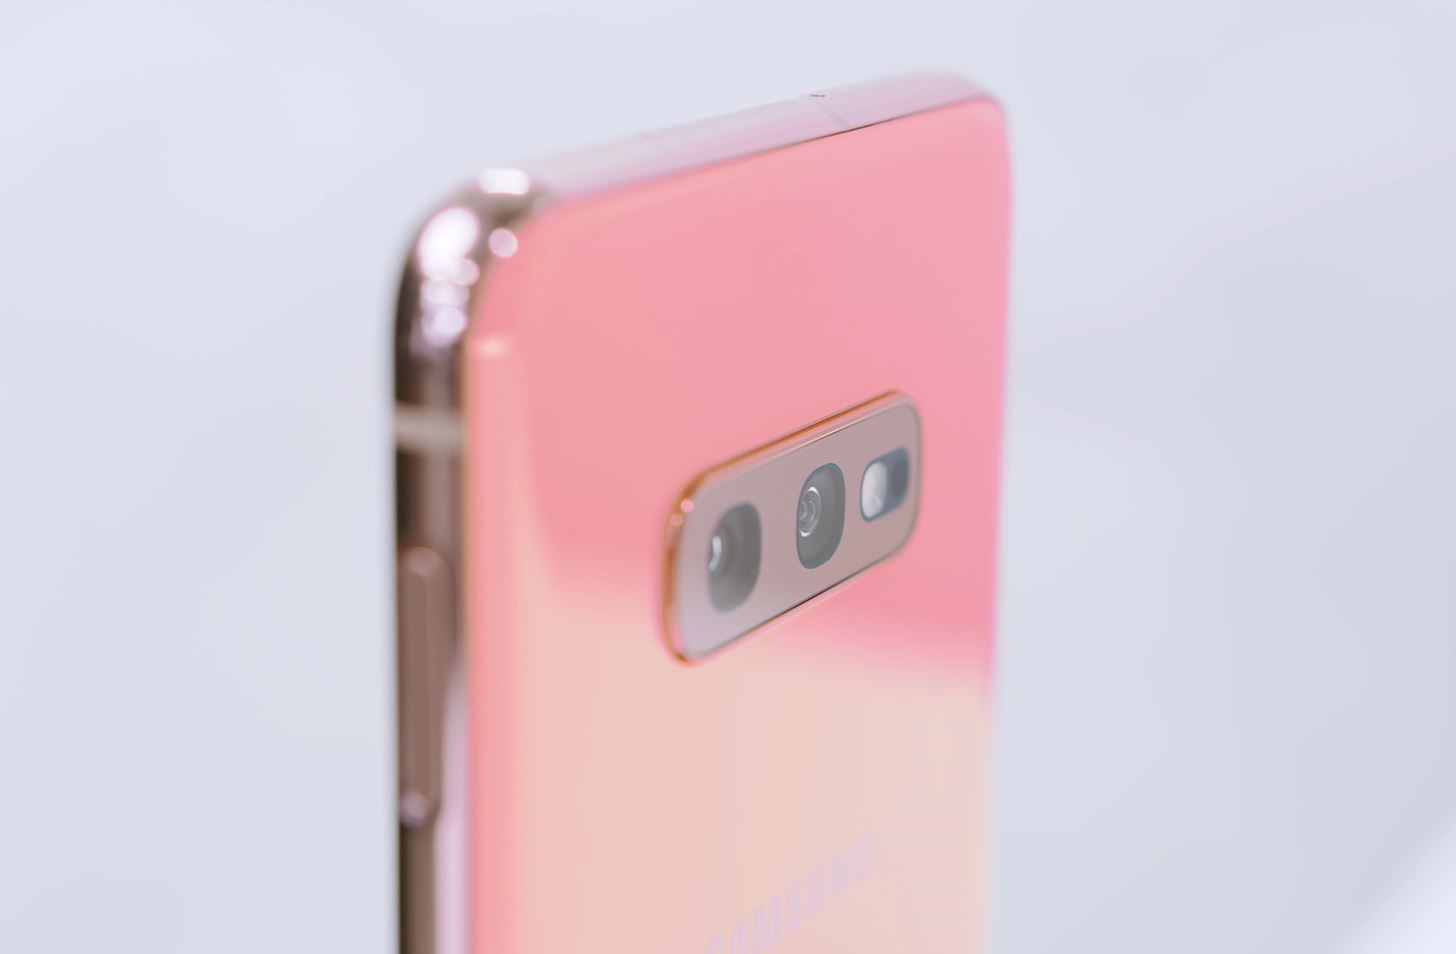 Spec Comparison: iPhone 11 vs. Galaxy S10e vs. OnePlus 7 Pro vs. ZenFone 6 vs. Axon 10 Pro